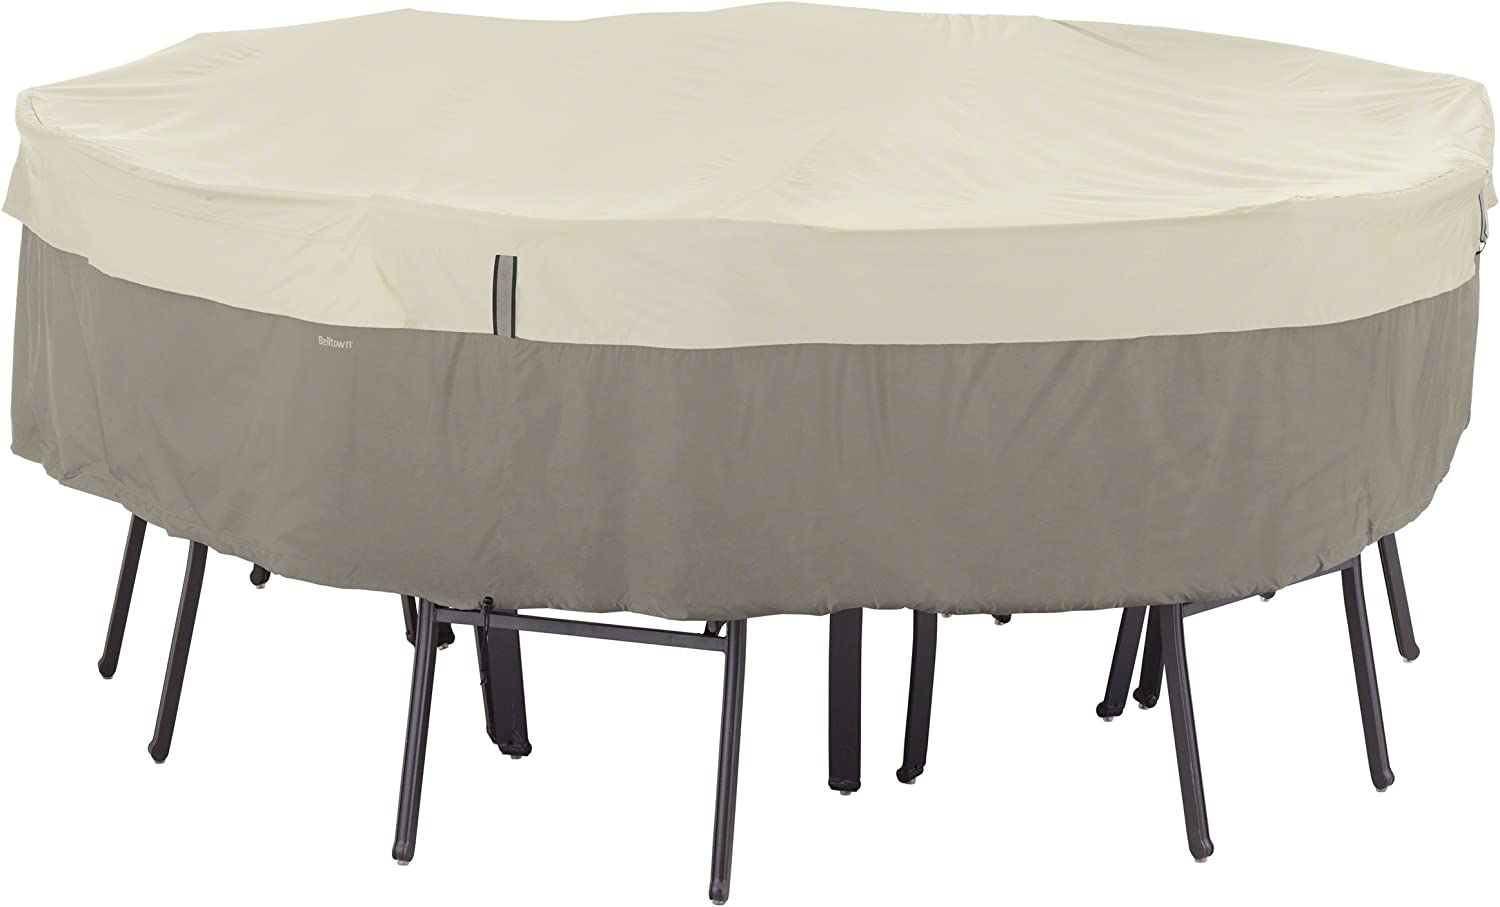 Classic Accessories 55-252-011001-00 Belltown Outdoor Round Patio Table & Patio Chair Set Cover - Weather and Water Resistant, Medium, Grey